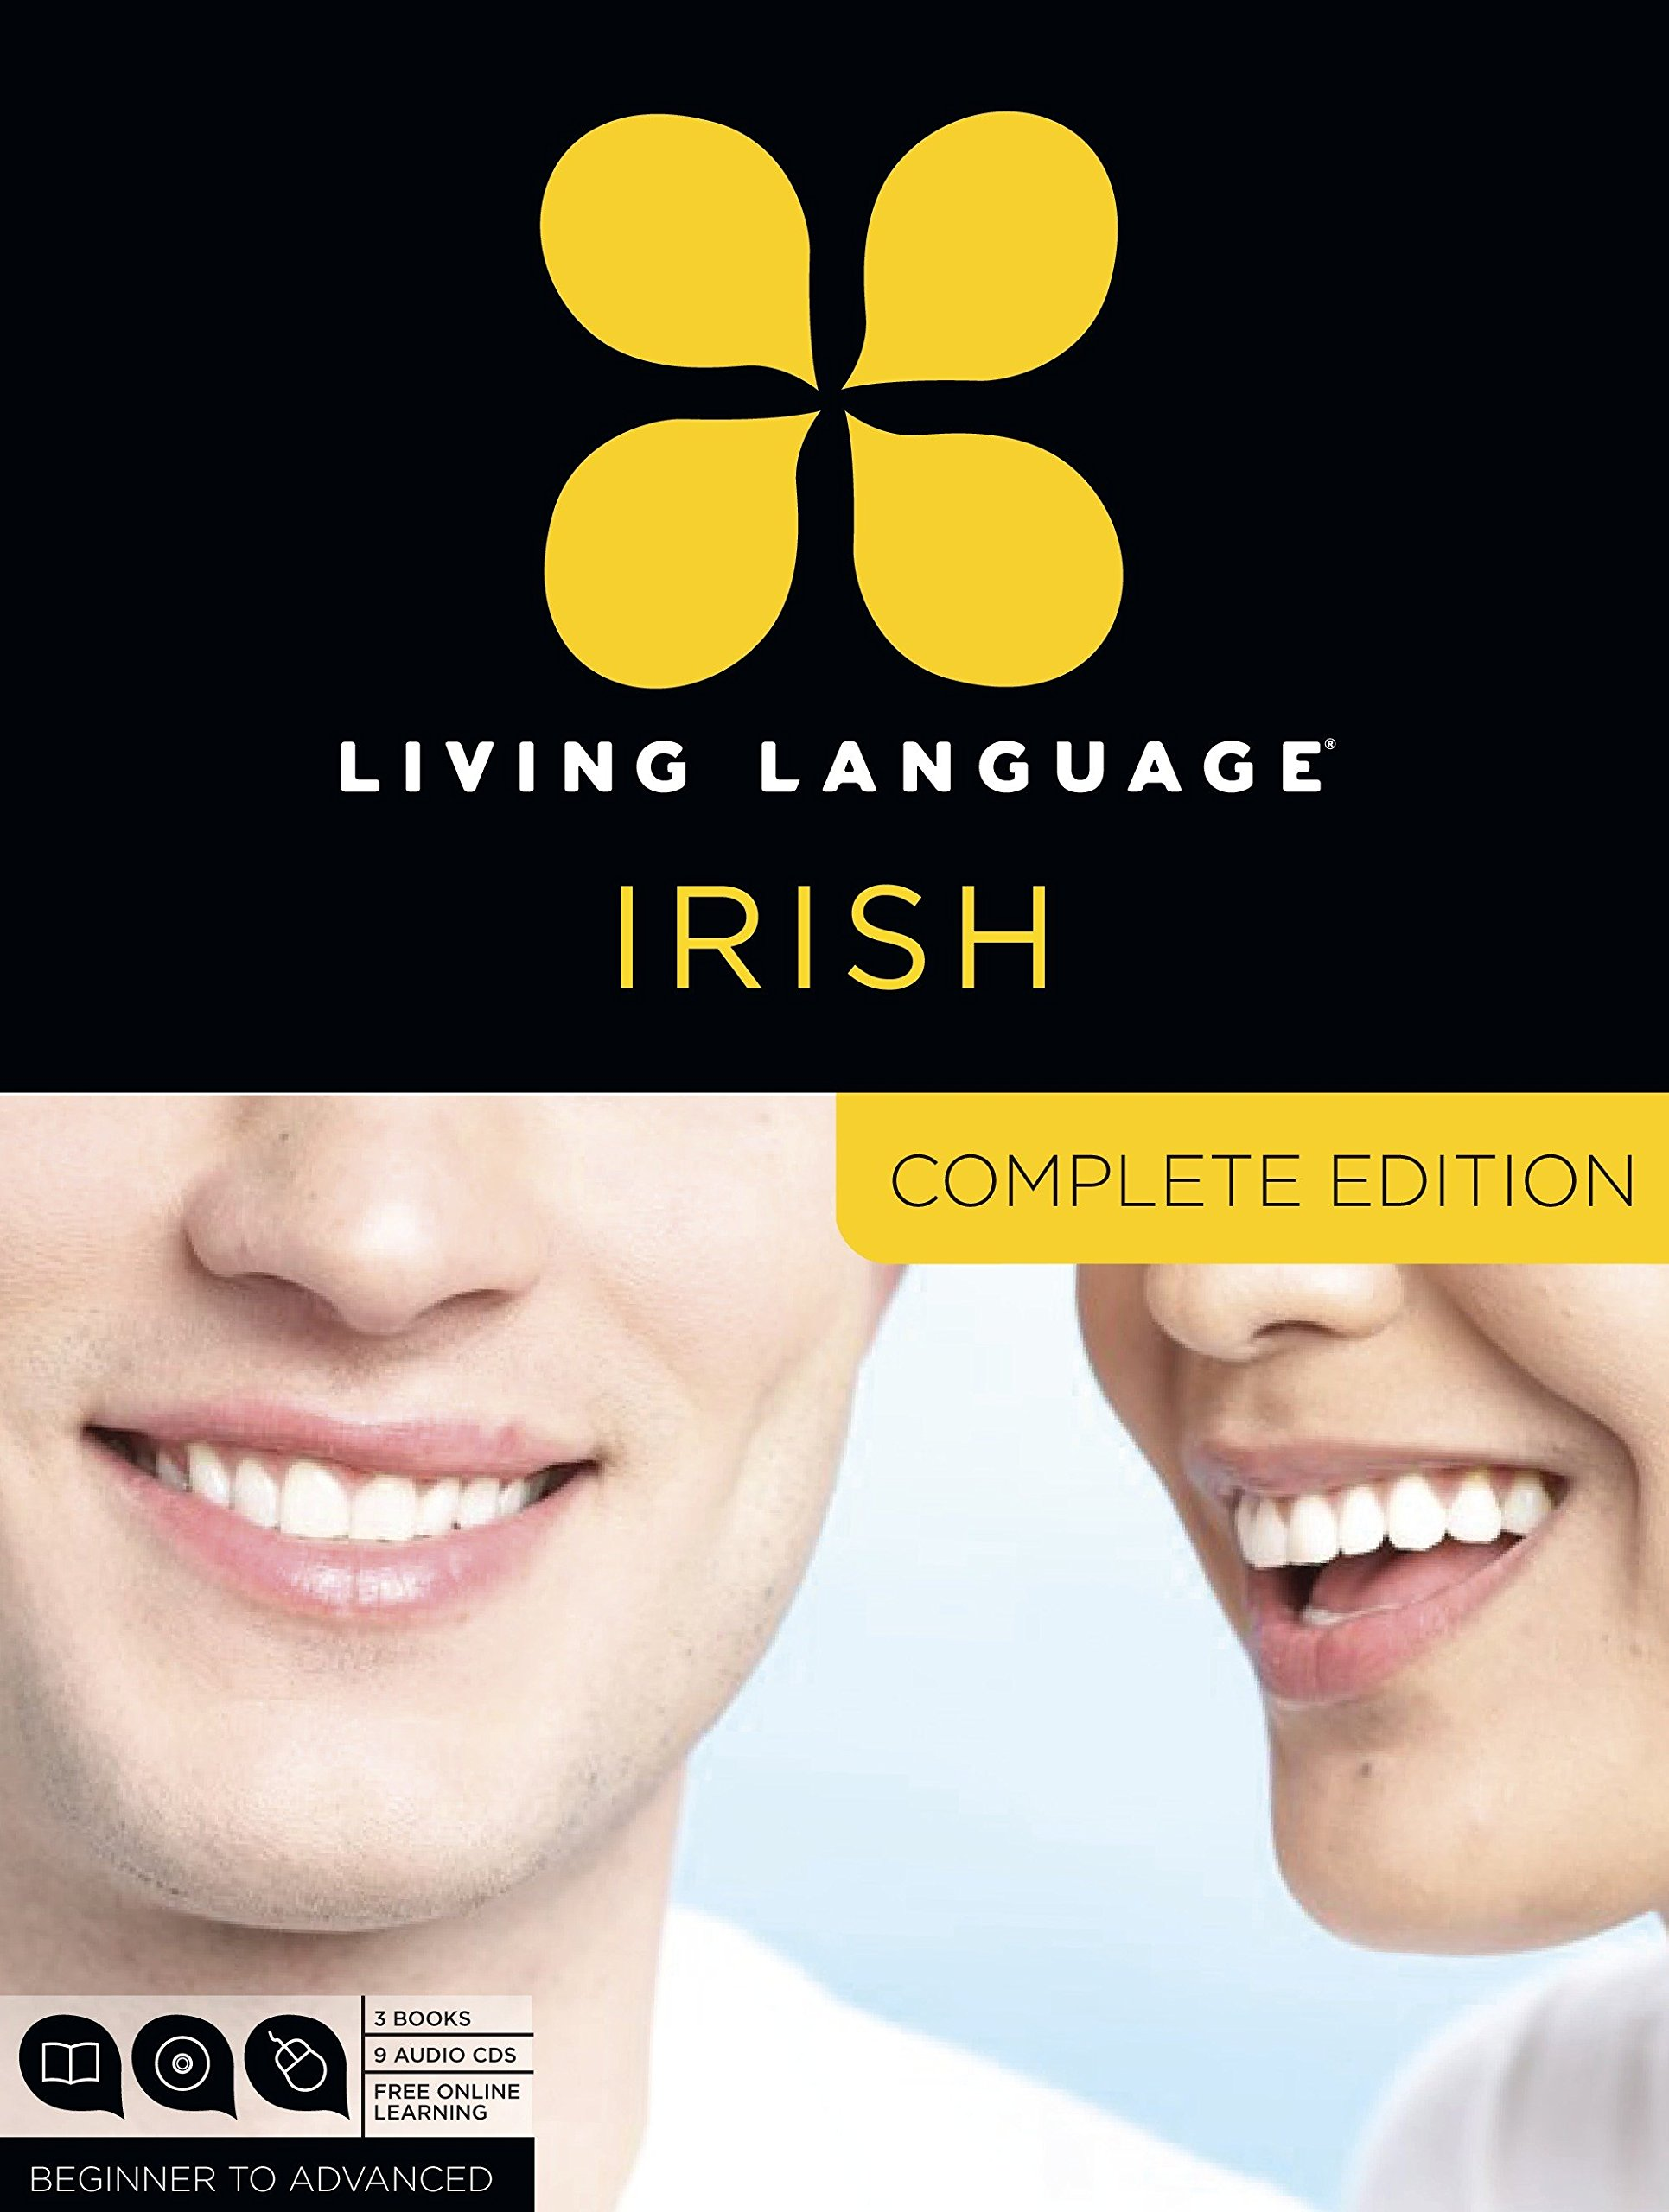 Living Language Irish, Complete Edition: Beginner through advanced course, including 3 coursebooks, 9 audio CDs, and free online learning by Living Language